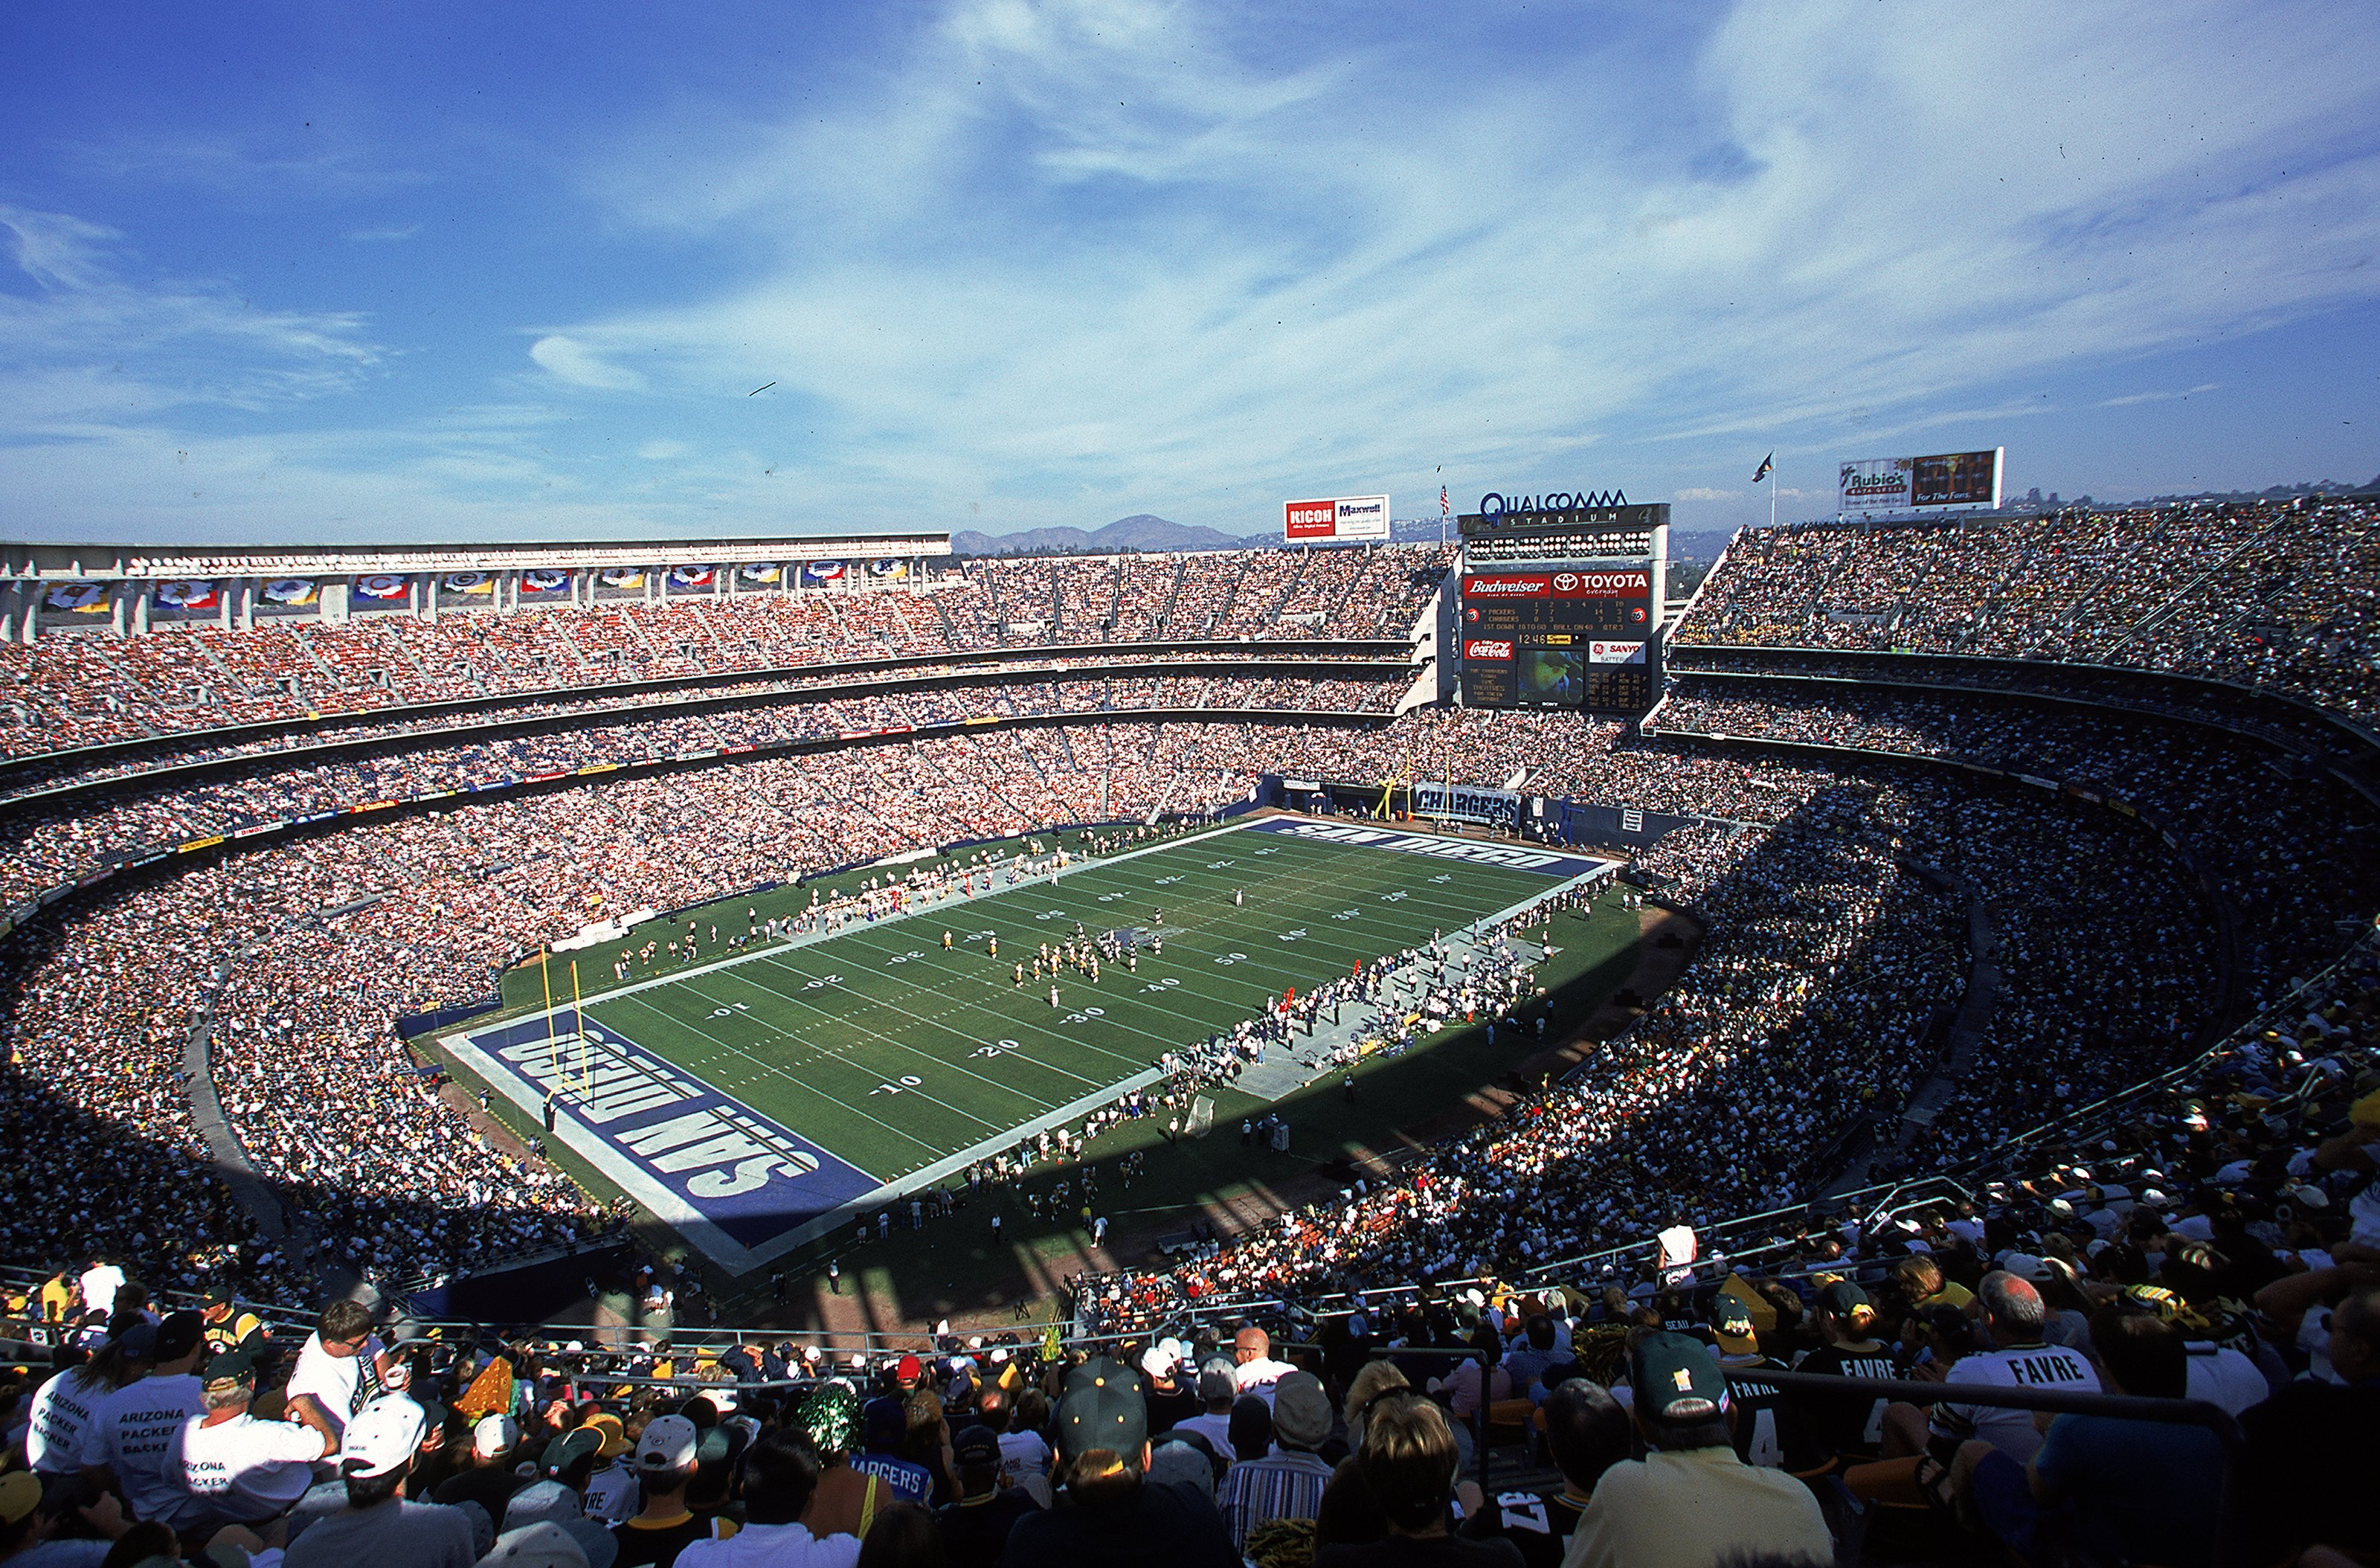 Originally christened San Diego Stadium when it opened in 1967, the complex was renamed Jack Murphy Stadium in honor of a local sportswriter who passed away in 1980. The name changed to its current moniker, Qualcomm, after a 1997 renovation; the field is currently the home of the San Diego Chargers.